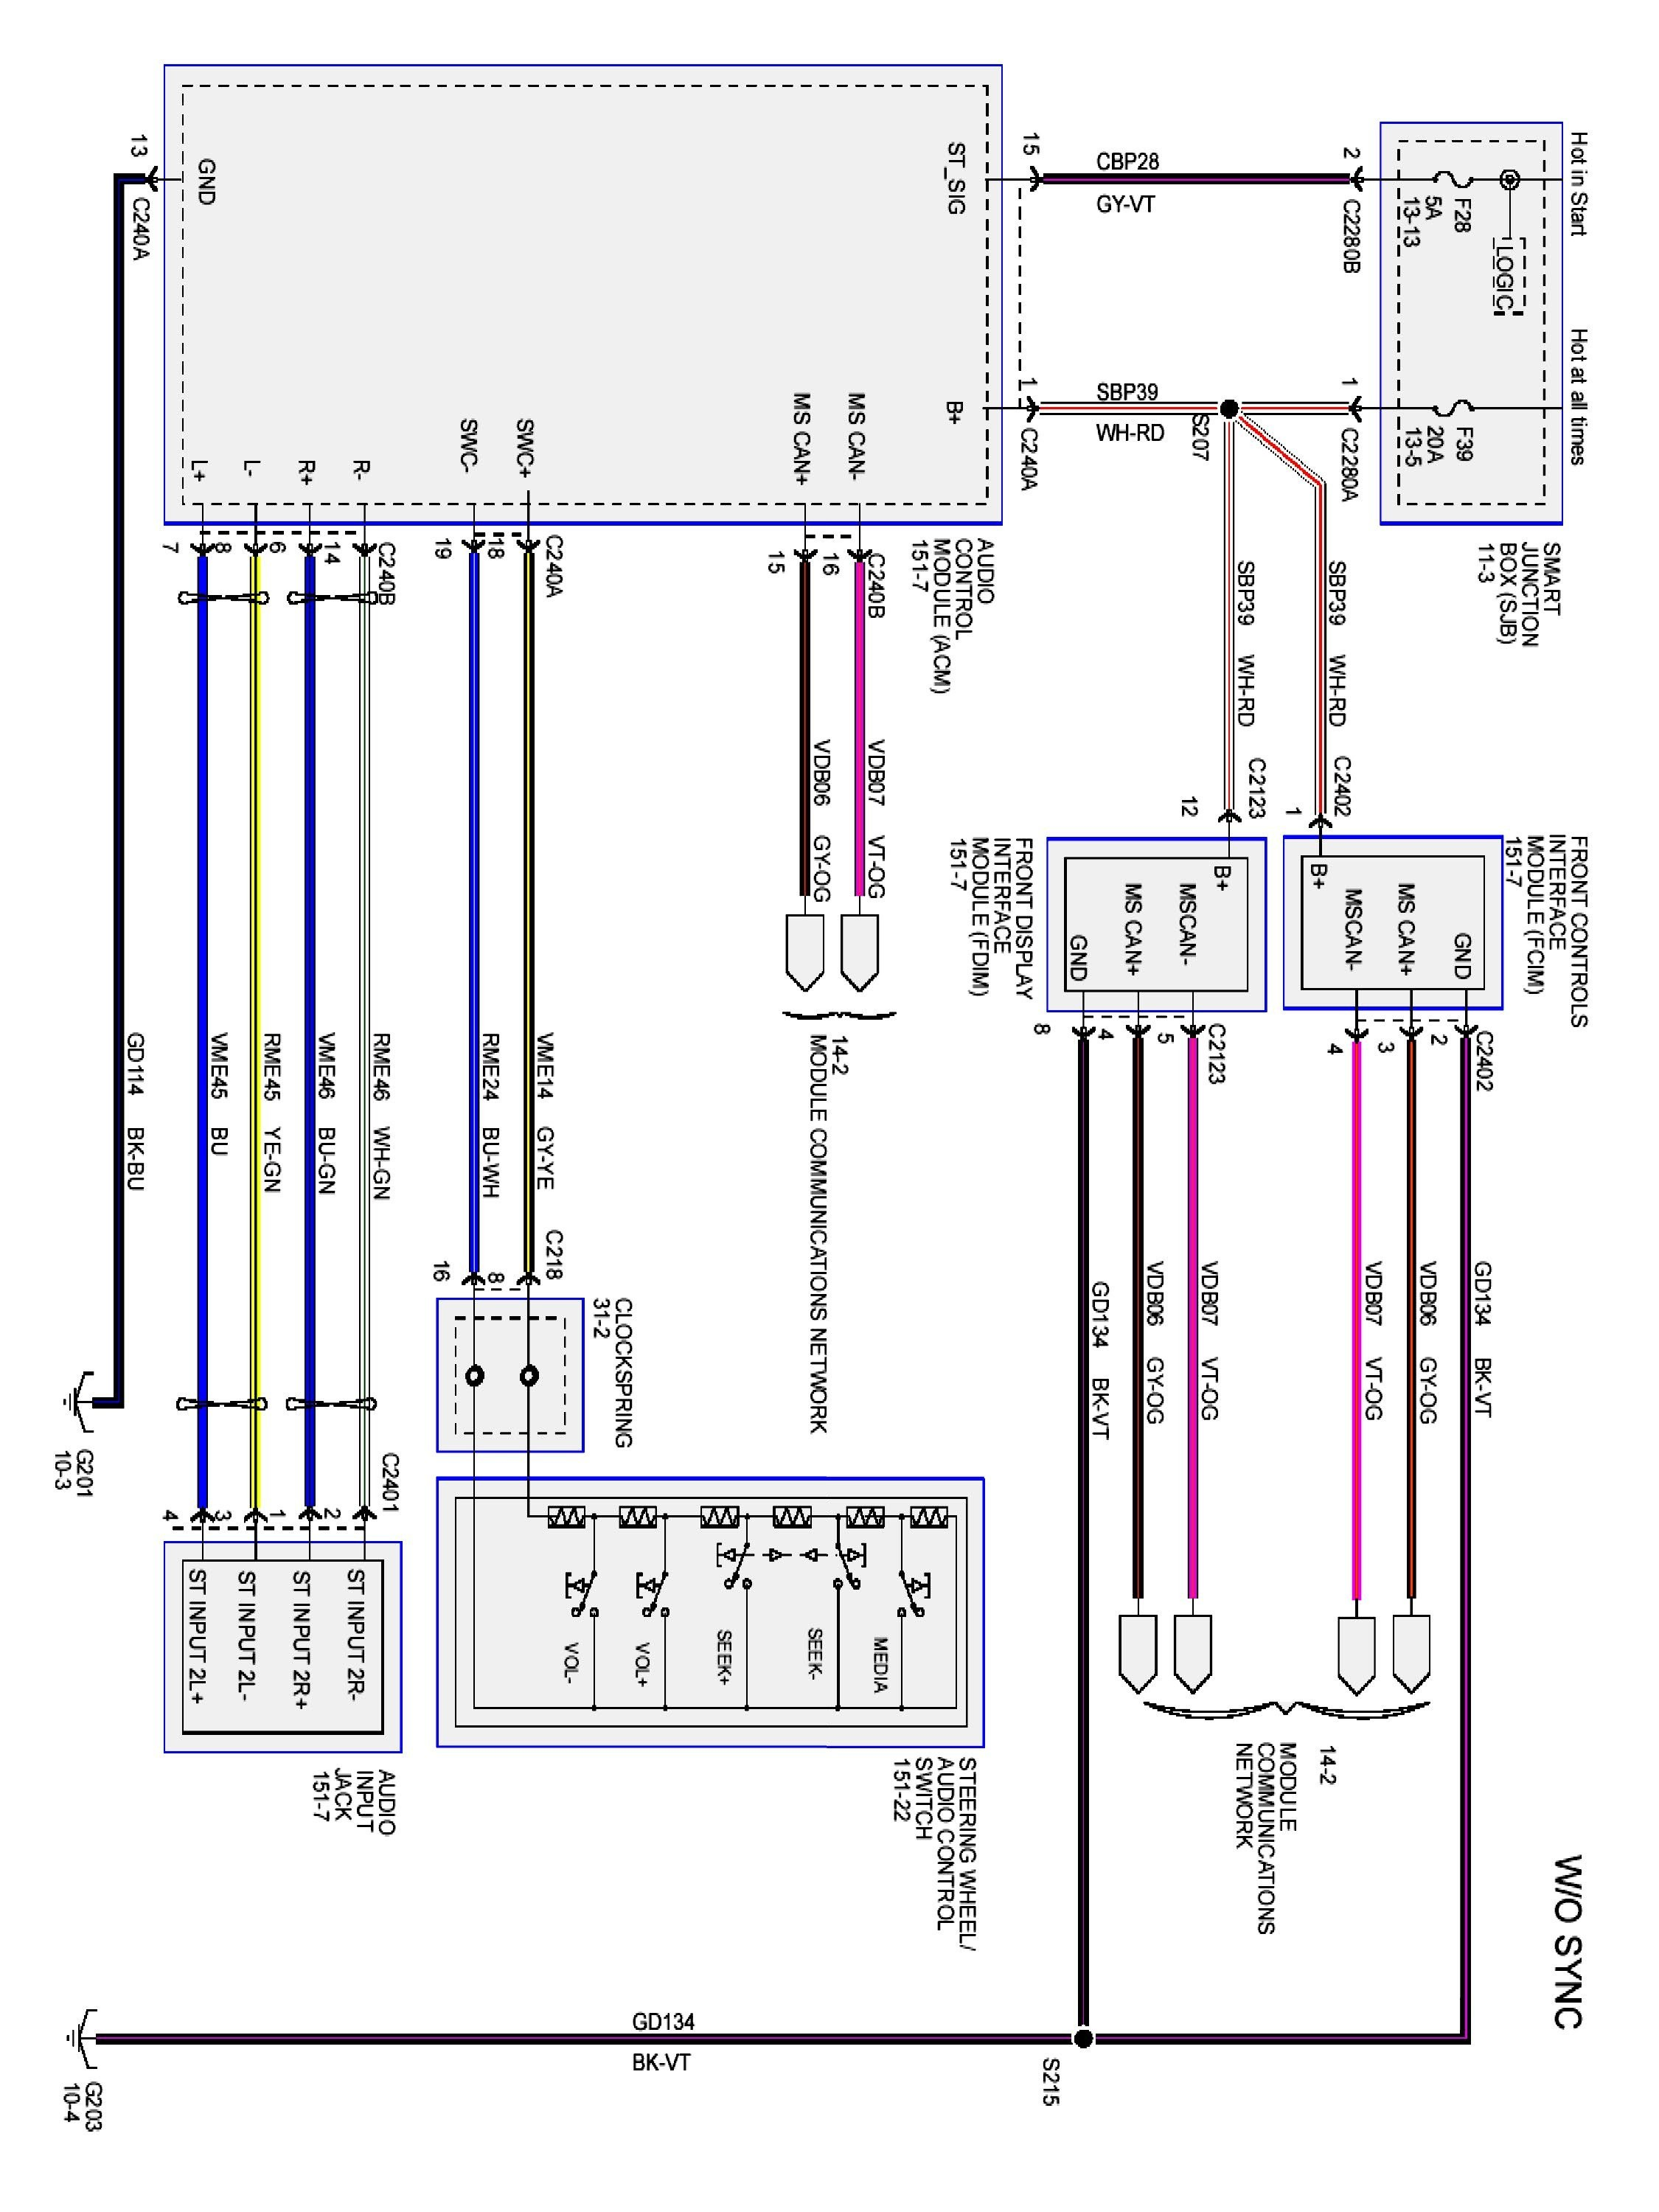 2000 Ford Expedition Stereo Wiring Diagram - Wiring Data